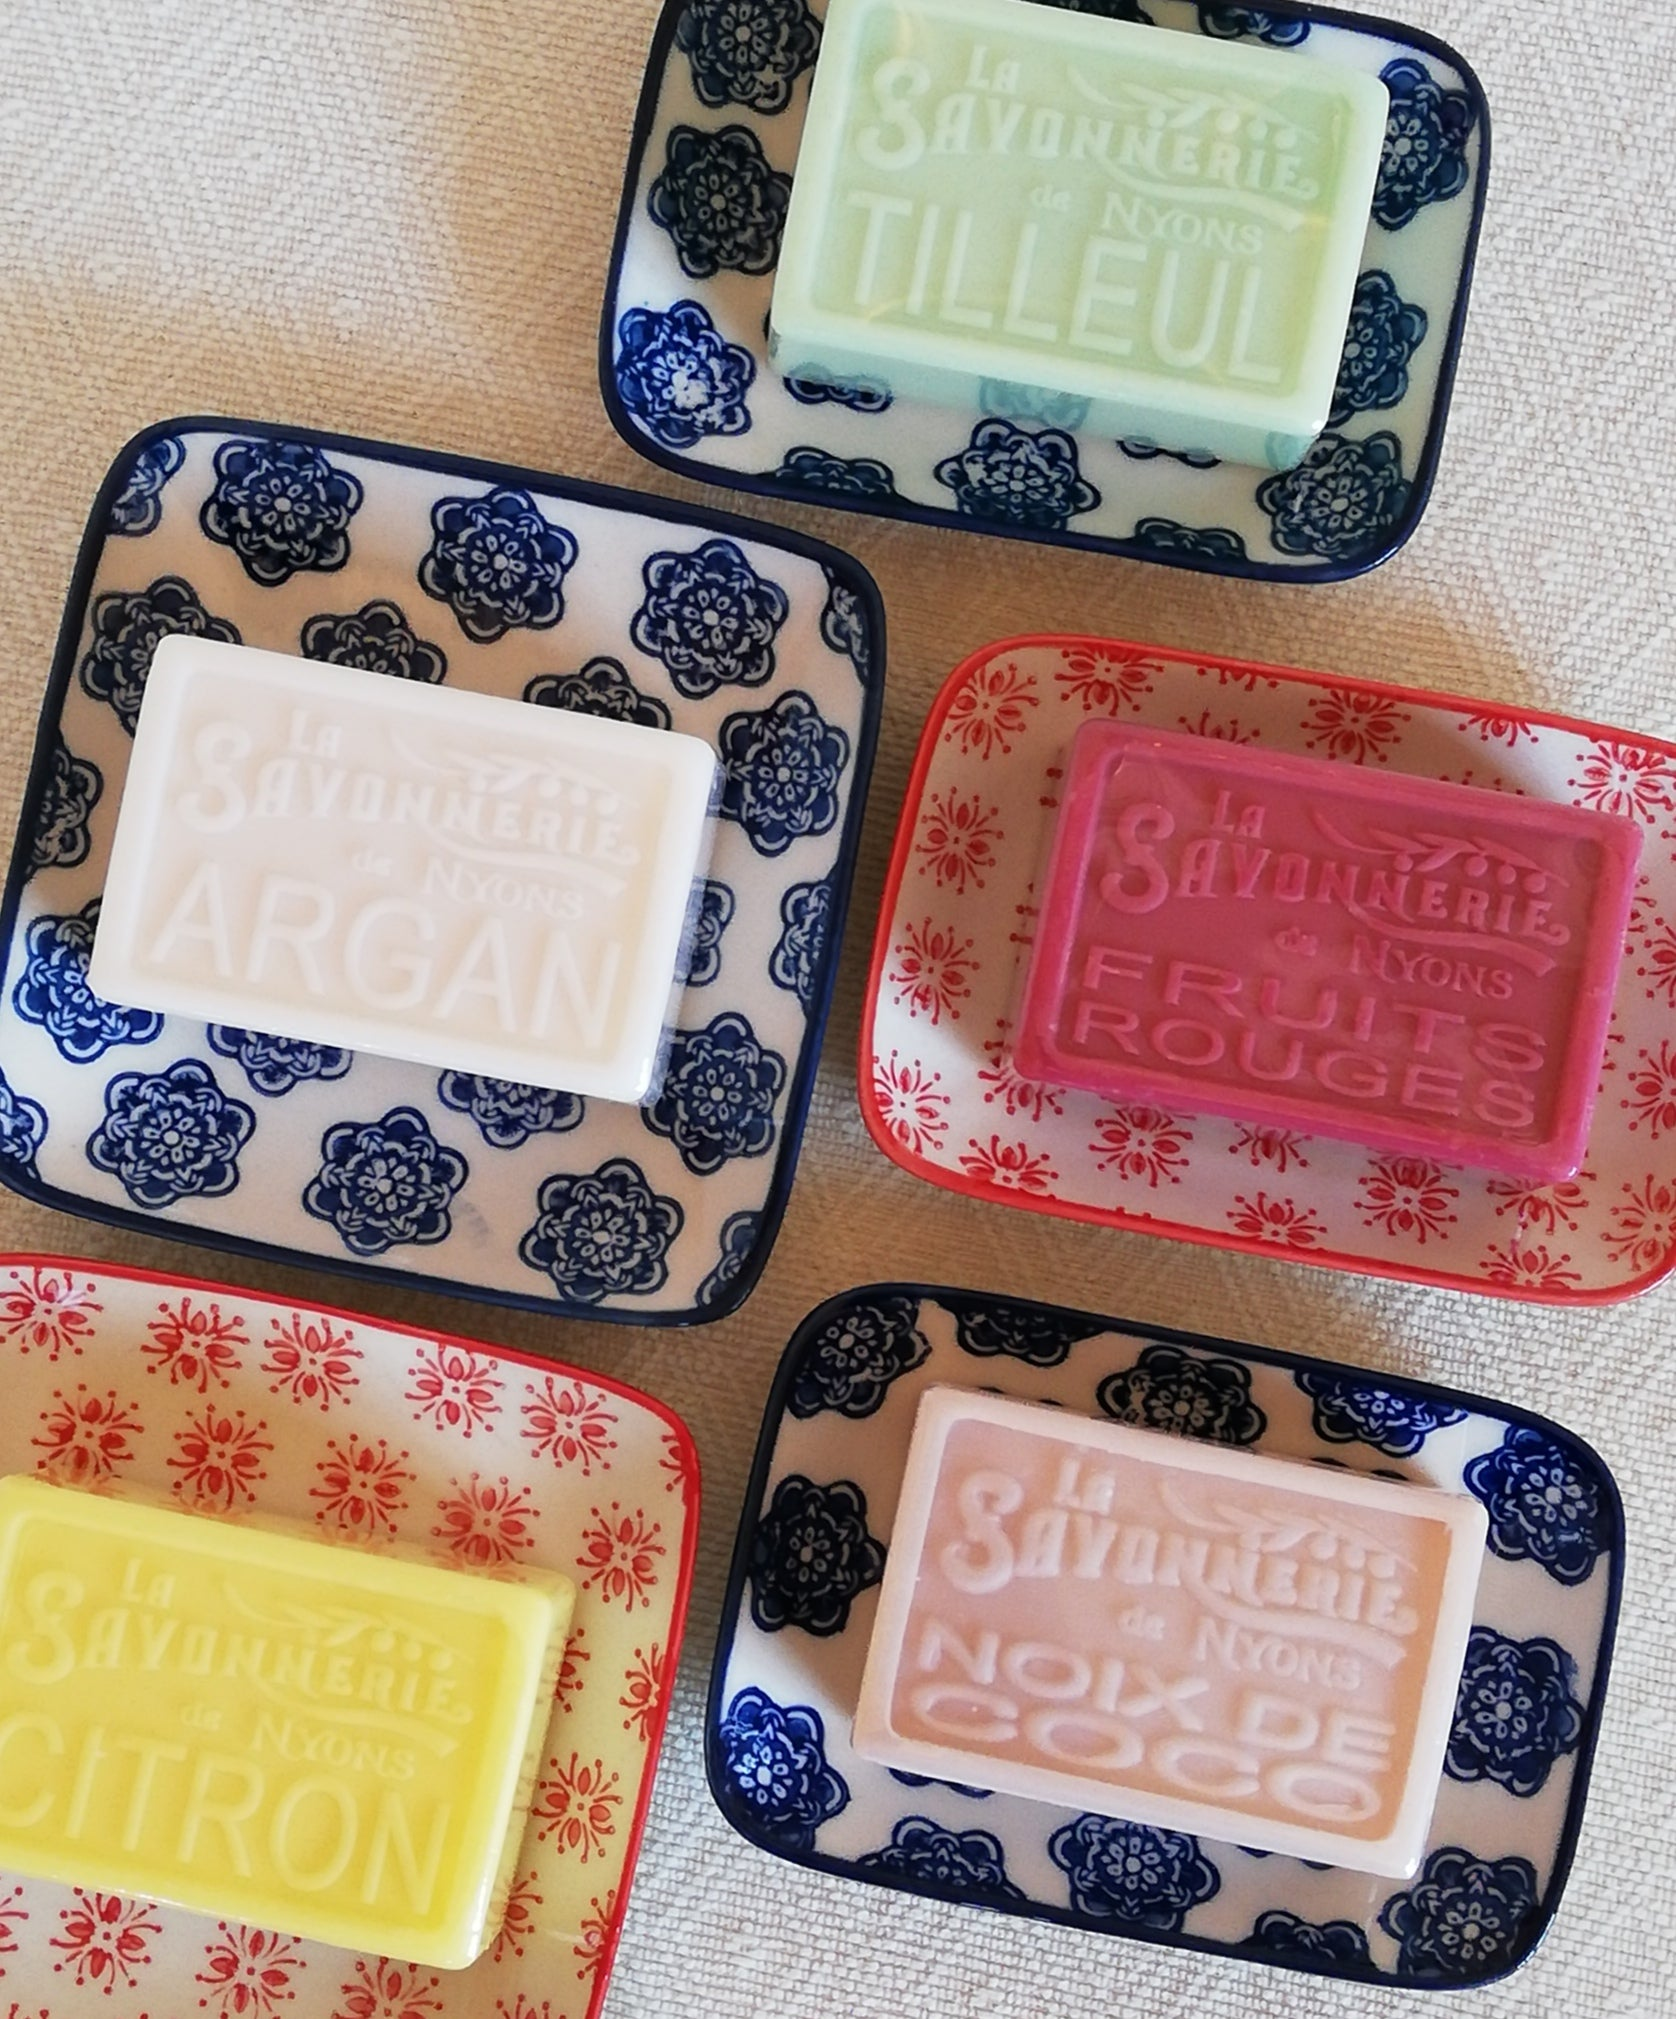 Olive Oil Soaps from Provence